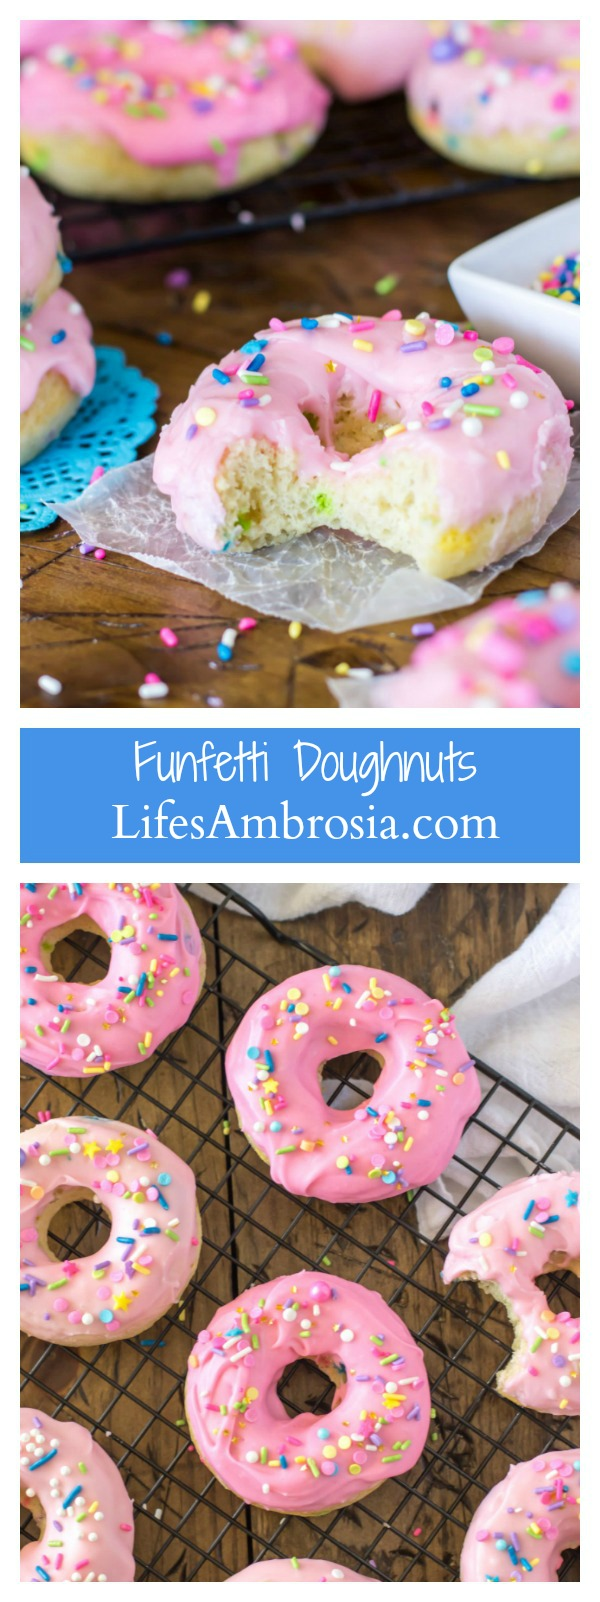 These Baked Funfetti Doughnuts are light, fluffy, crammed with sprinkles, and covered in a pretty pink glaze (and more sprinkles!)